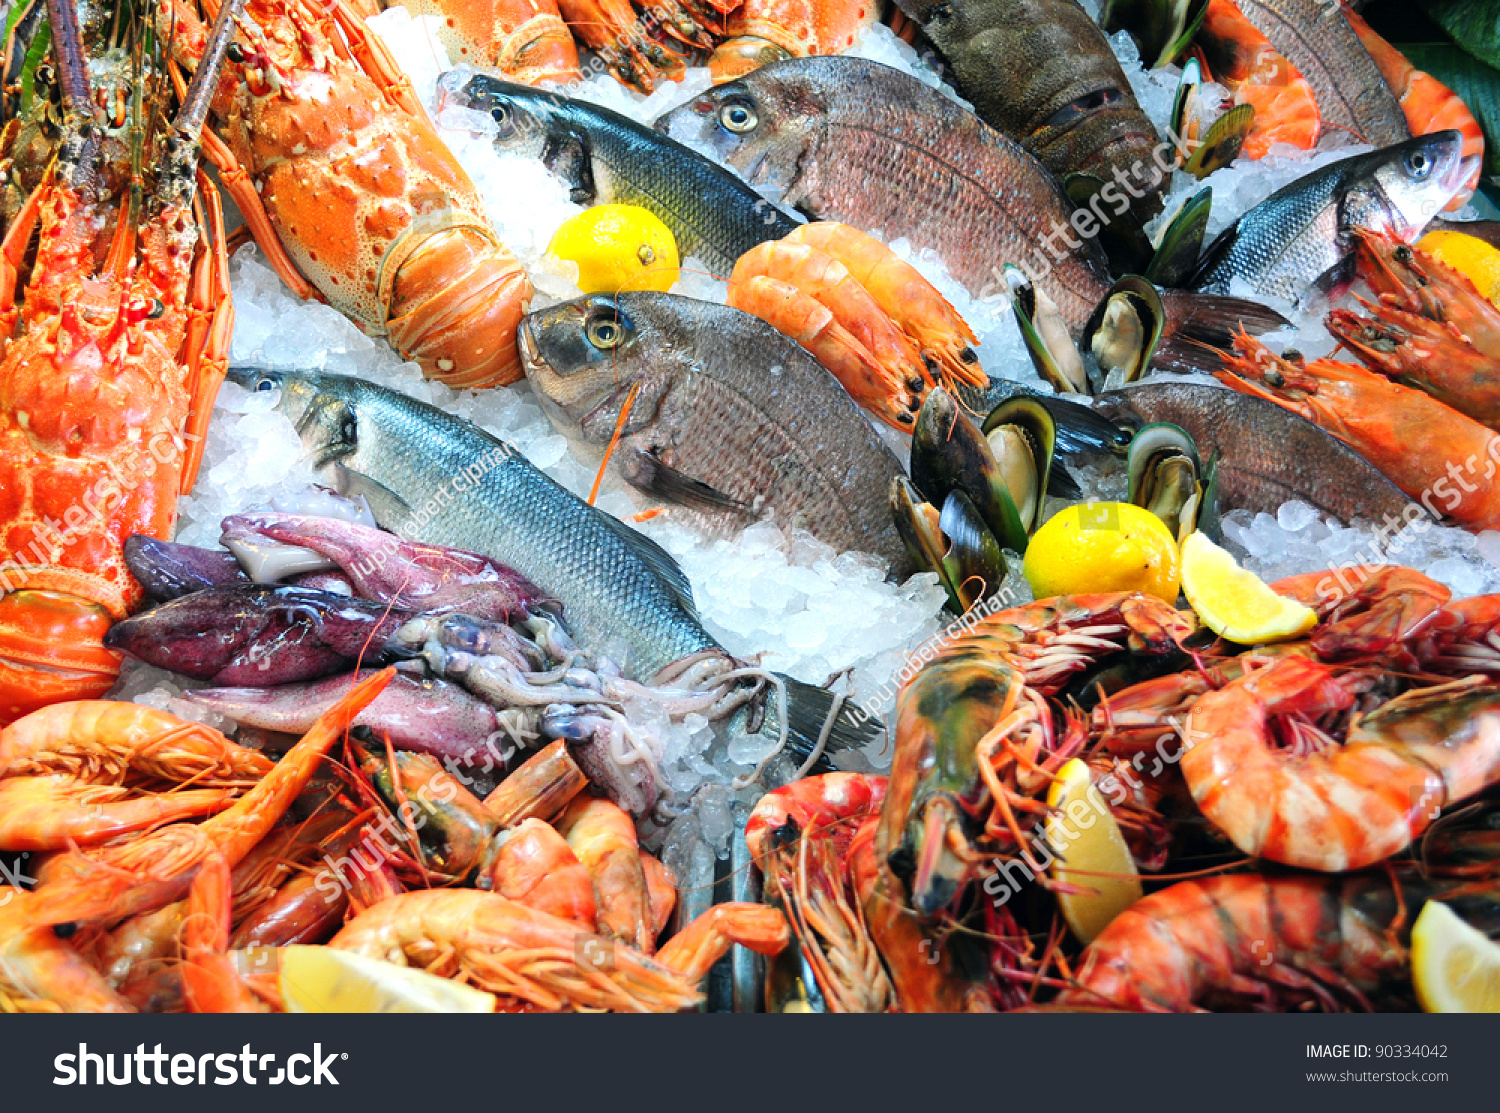 Fresh seafood photographed fish market stock photo for Seafood fish market